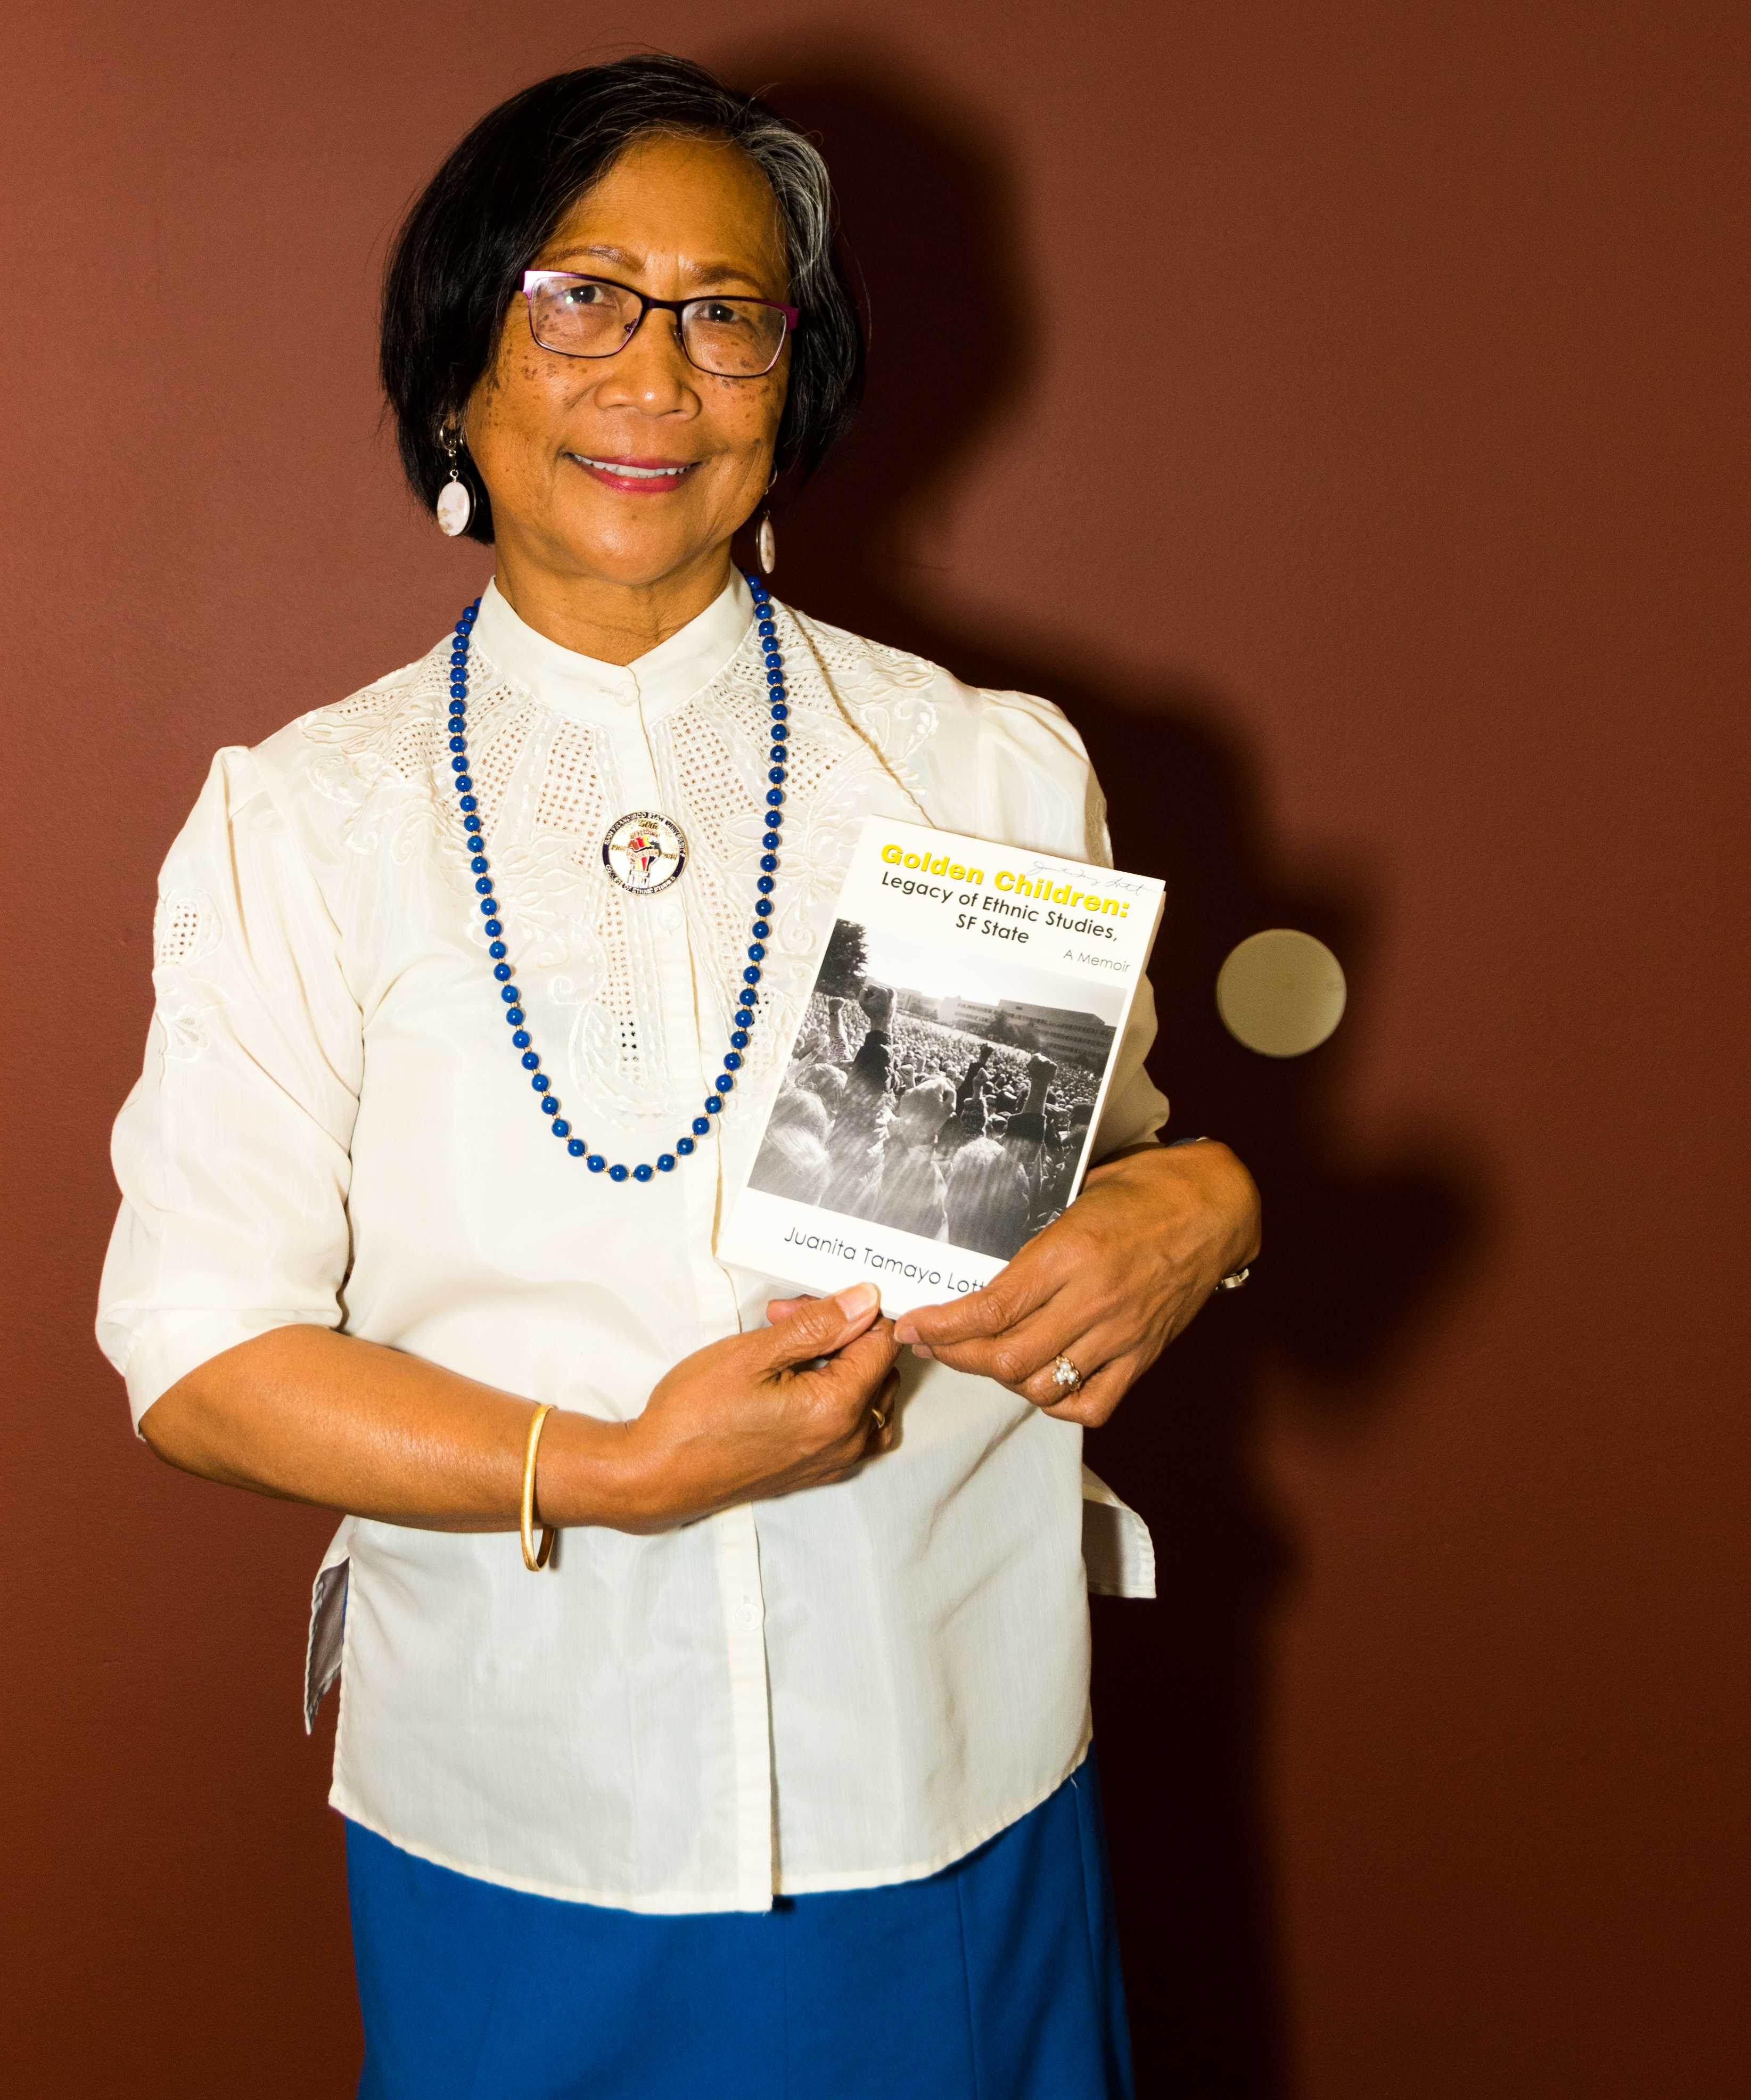 "One of the strikers of the 1968-69 SF State student strike Juanita Tomayo Lott shows her latest book, ""Golden Children: Legacy of Ethnic Studies, SF State,"" at Towers Conference Center for the event to commemorate the 50th Anniversary of the SF State Student Strike at SF State on Saturday, Nov. 10, 2018."